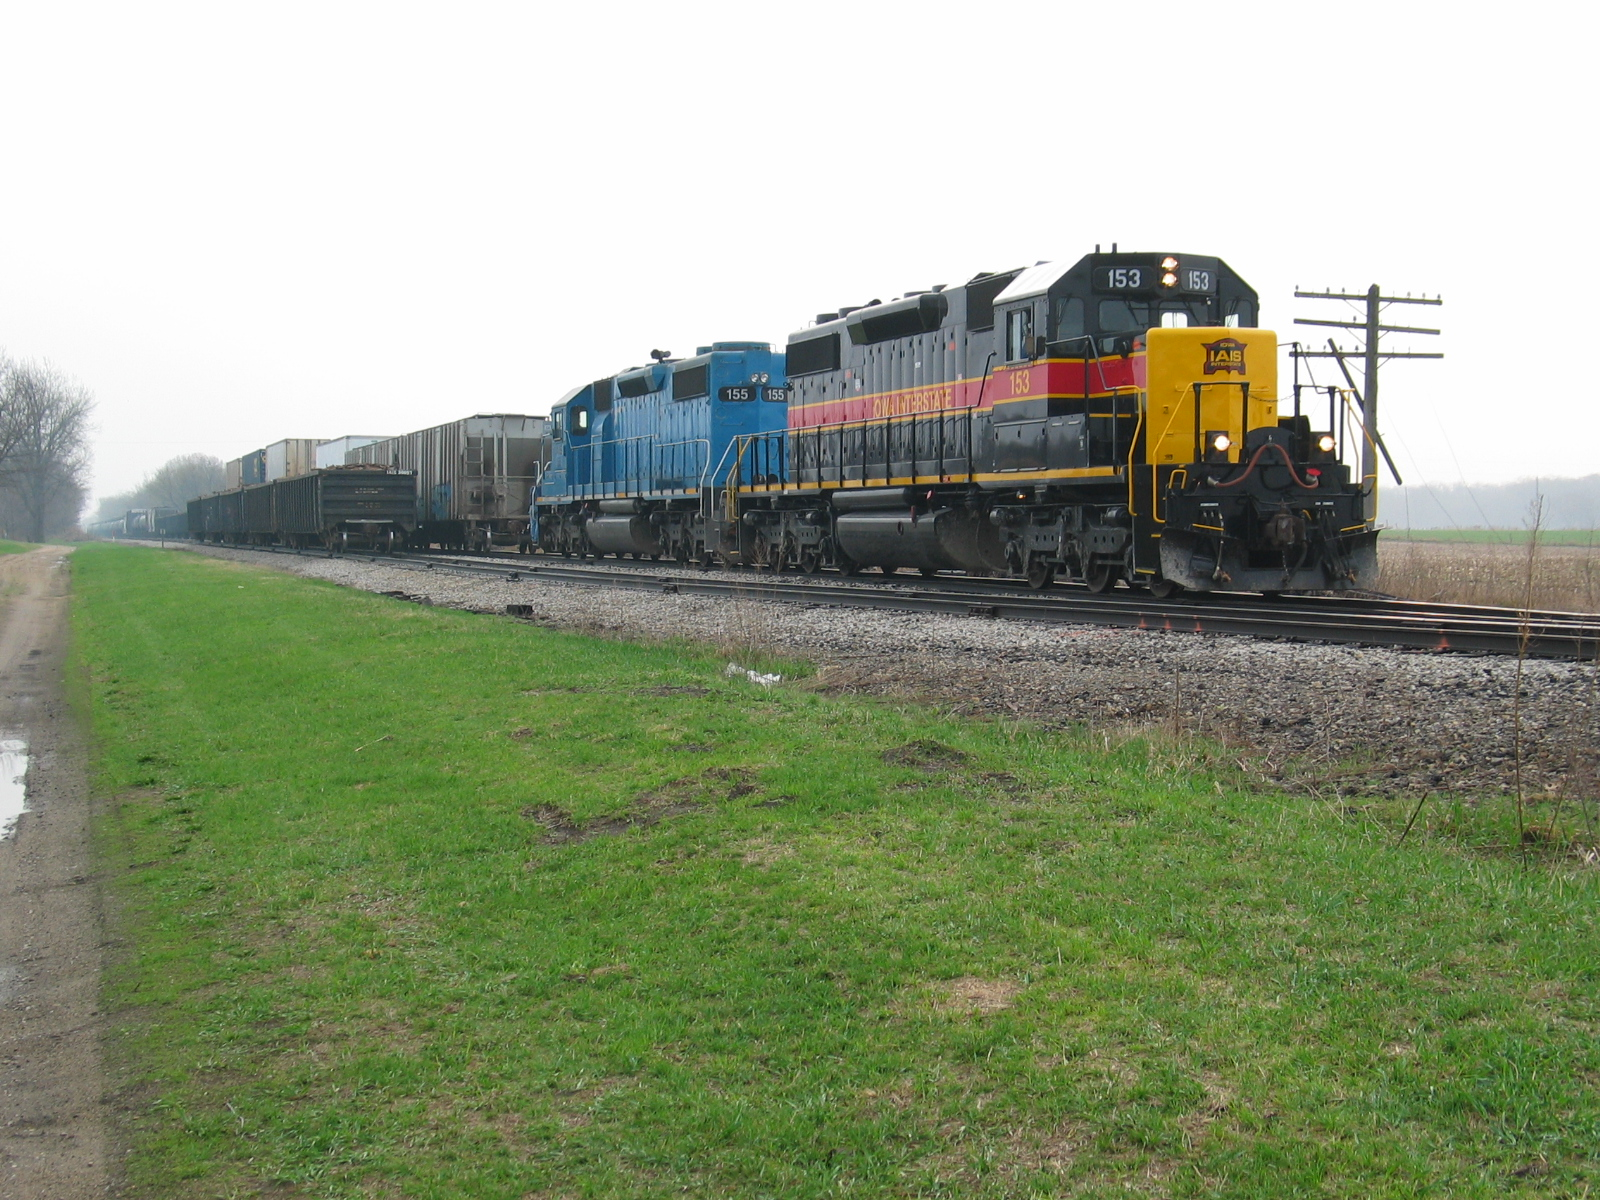 West train at N. Star, March 31, 2007.  The crew has just set out 4 scrap loads and is backing onto their train.